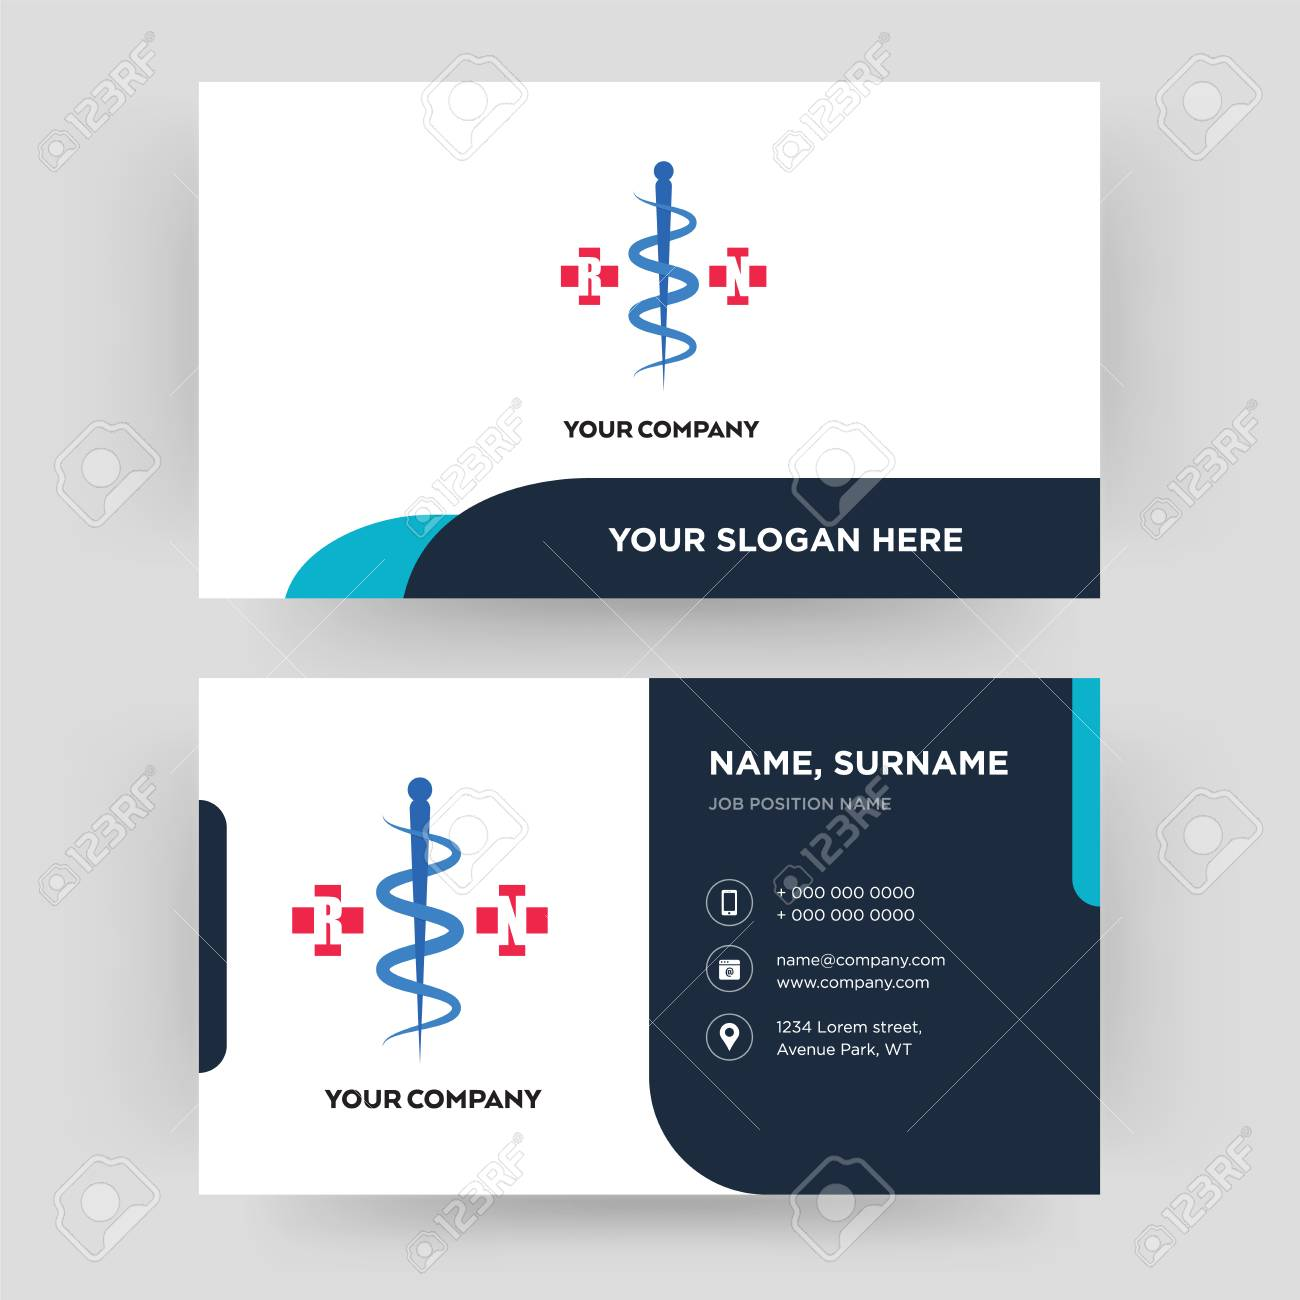 registe nurse, business card design template, Visiting for your company, Modern Creative and Clean identity Card Vector - 102504240